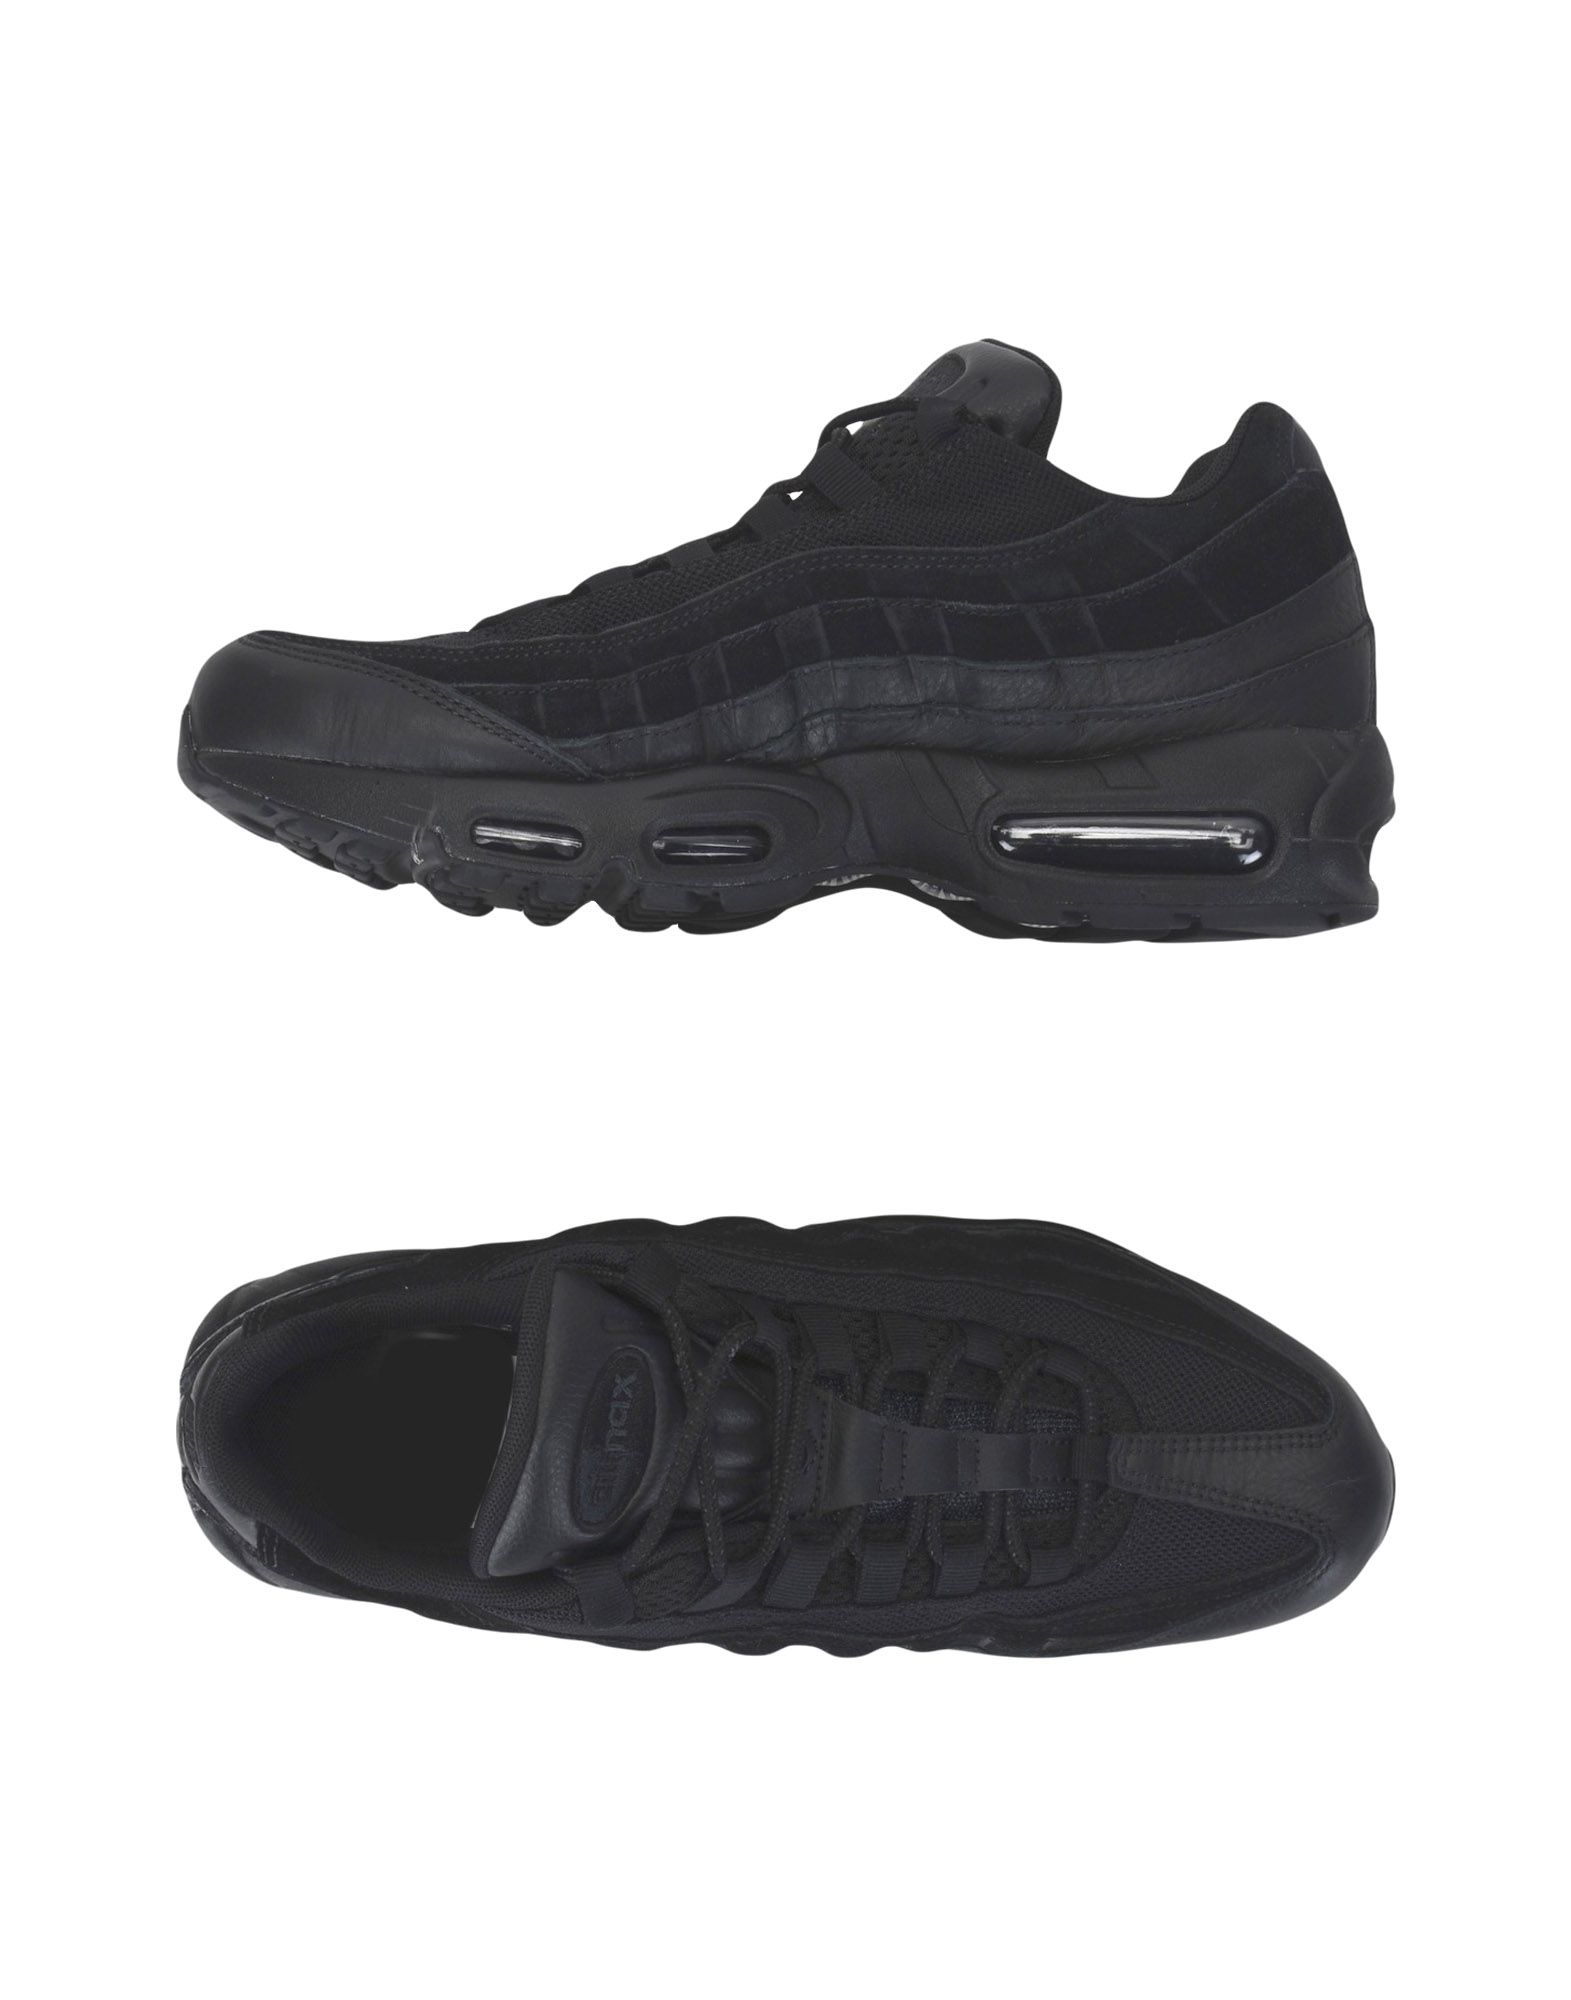 Sneakers Nike  Air Max 95 Premium - Uomo - Acquista online su